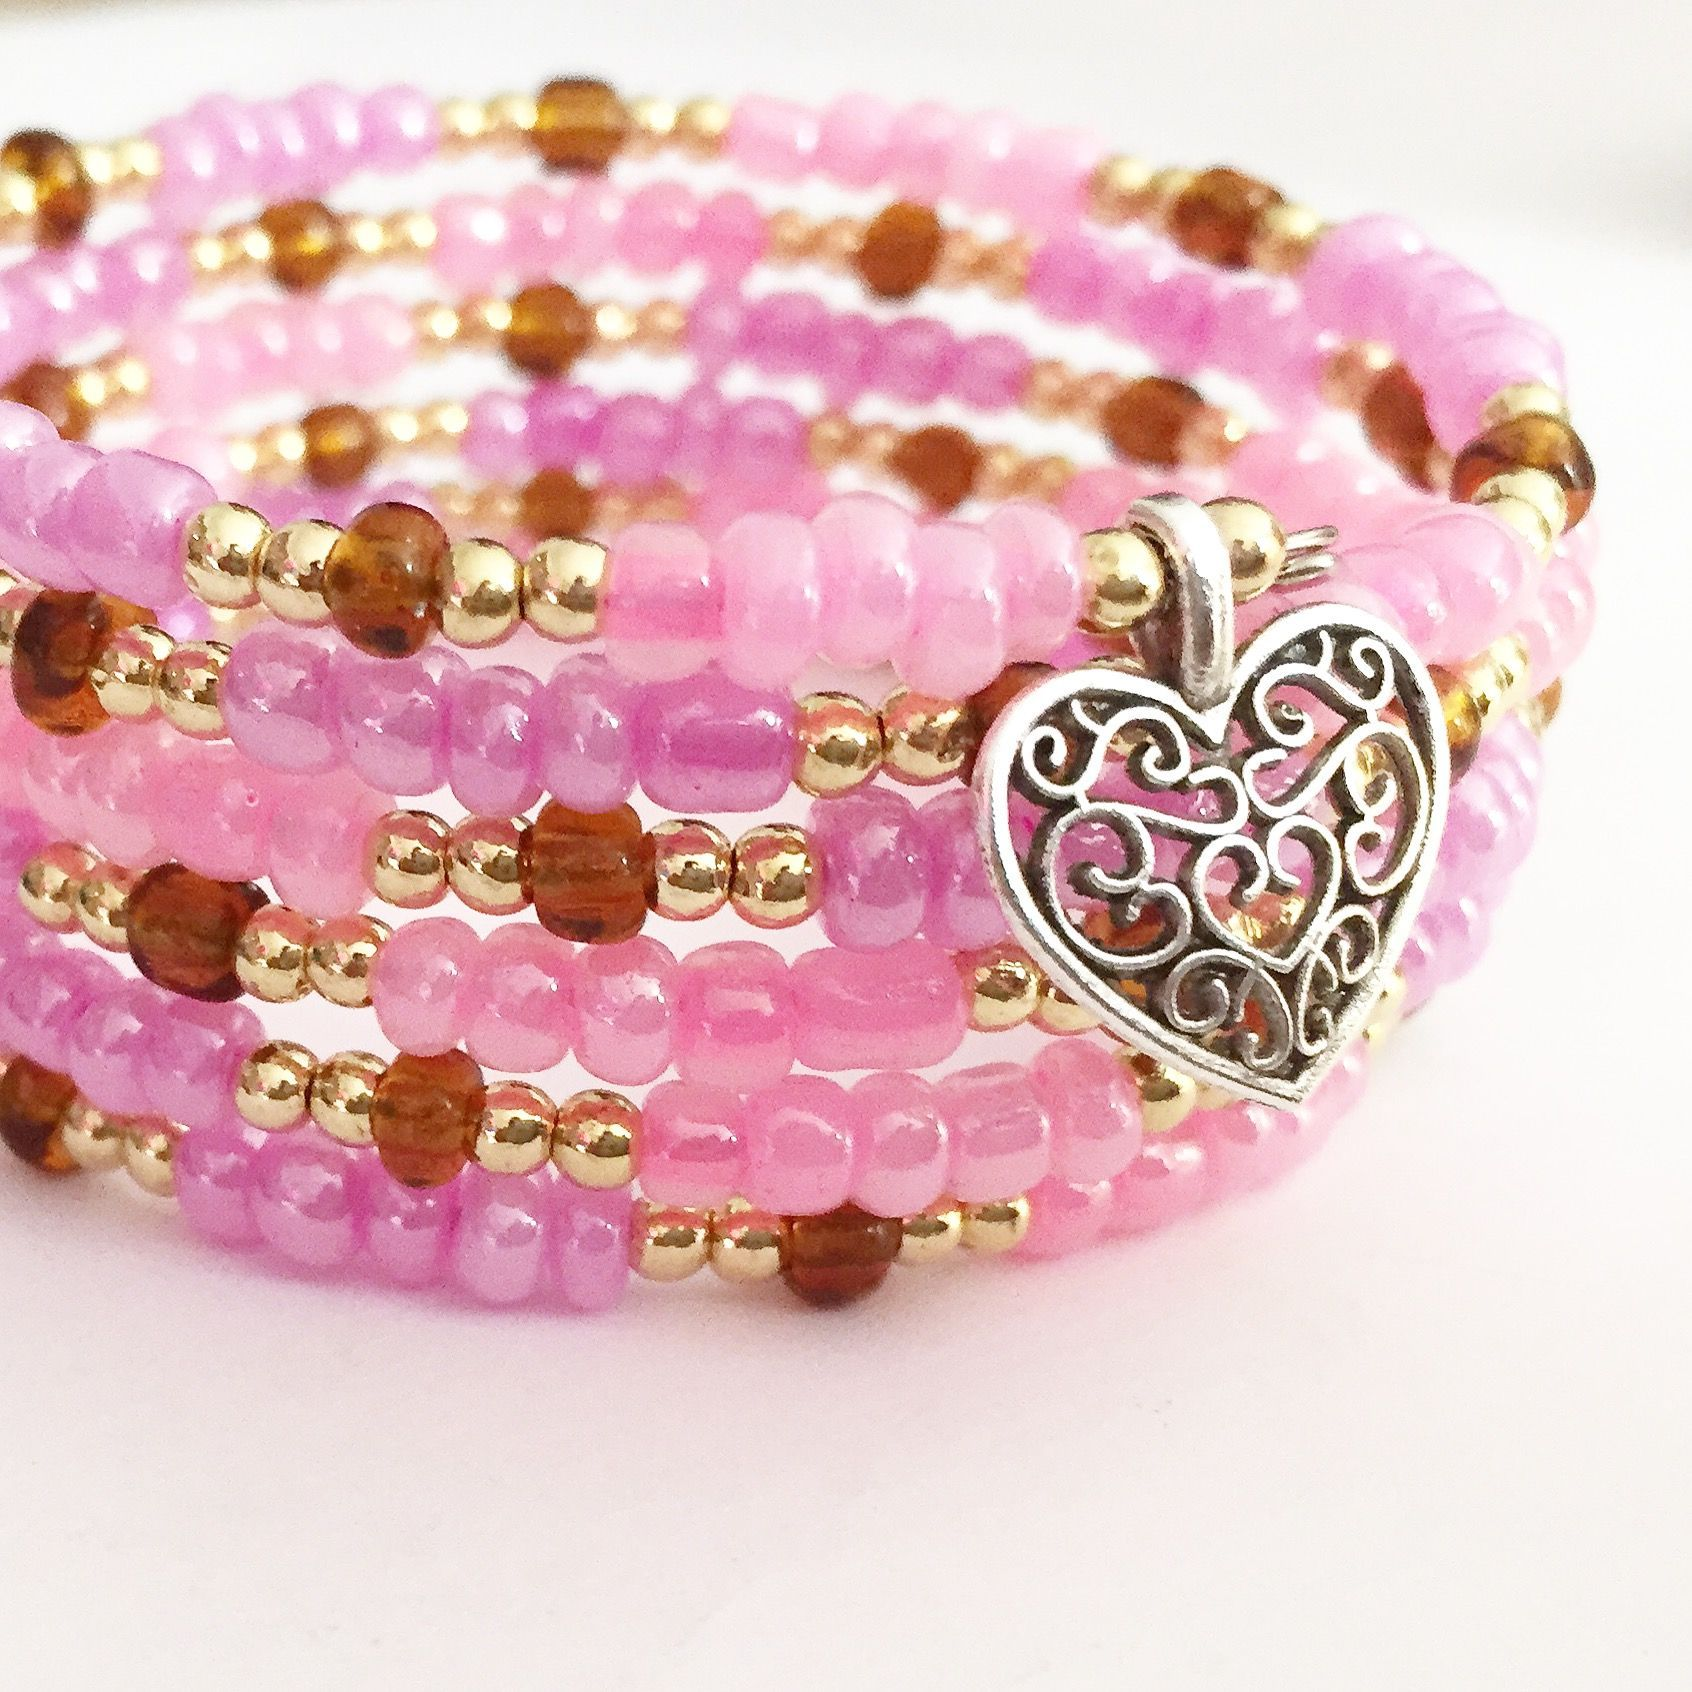 Improve your skills with jewelry making classes girl guides heart